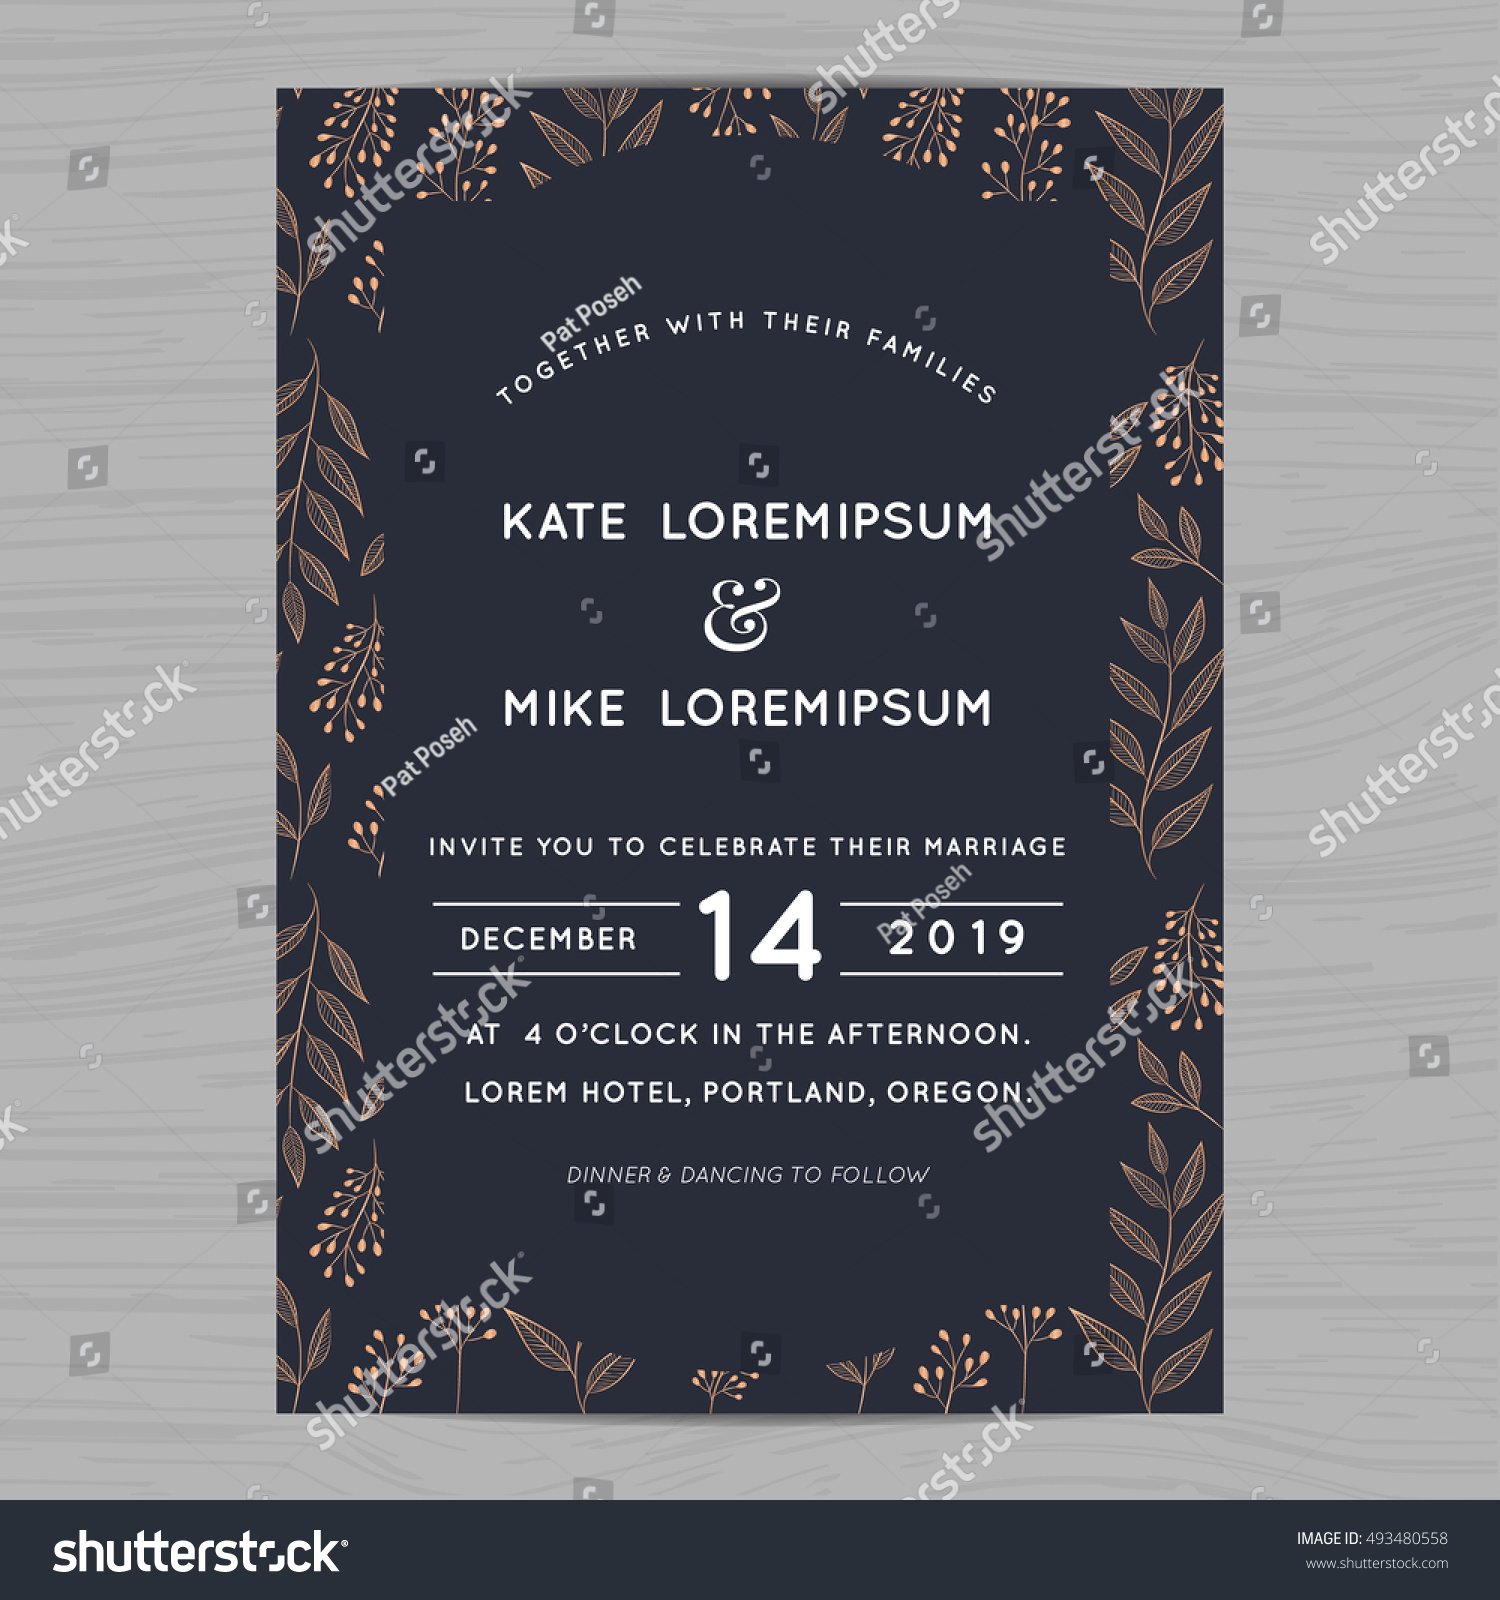 Wedding Invitation Card Template Decorate Flower Stock Vector